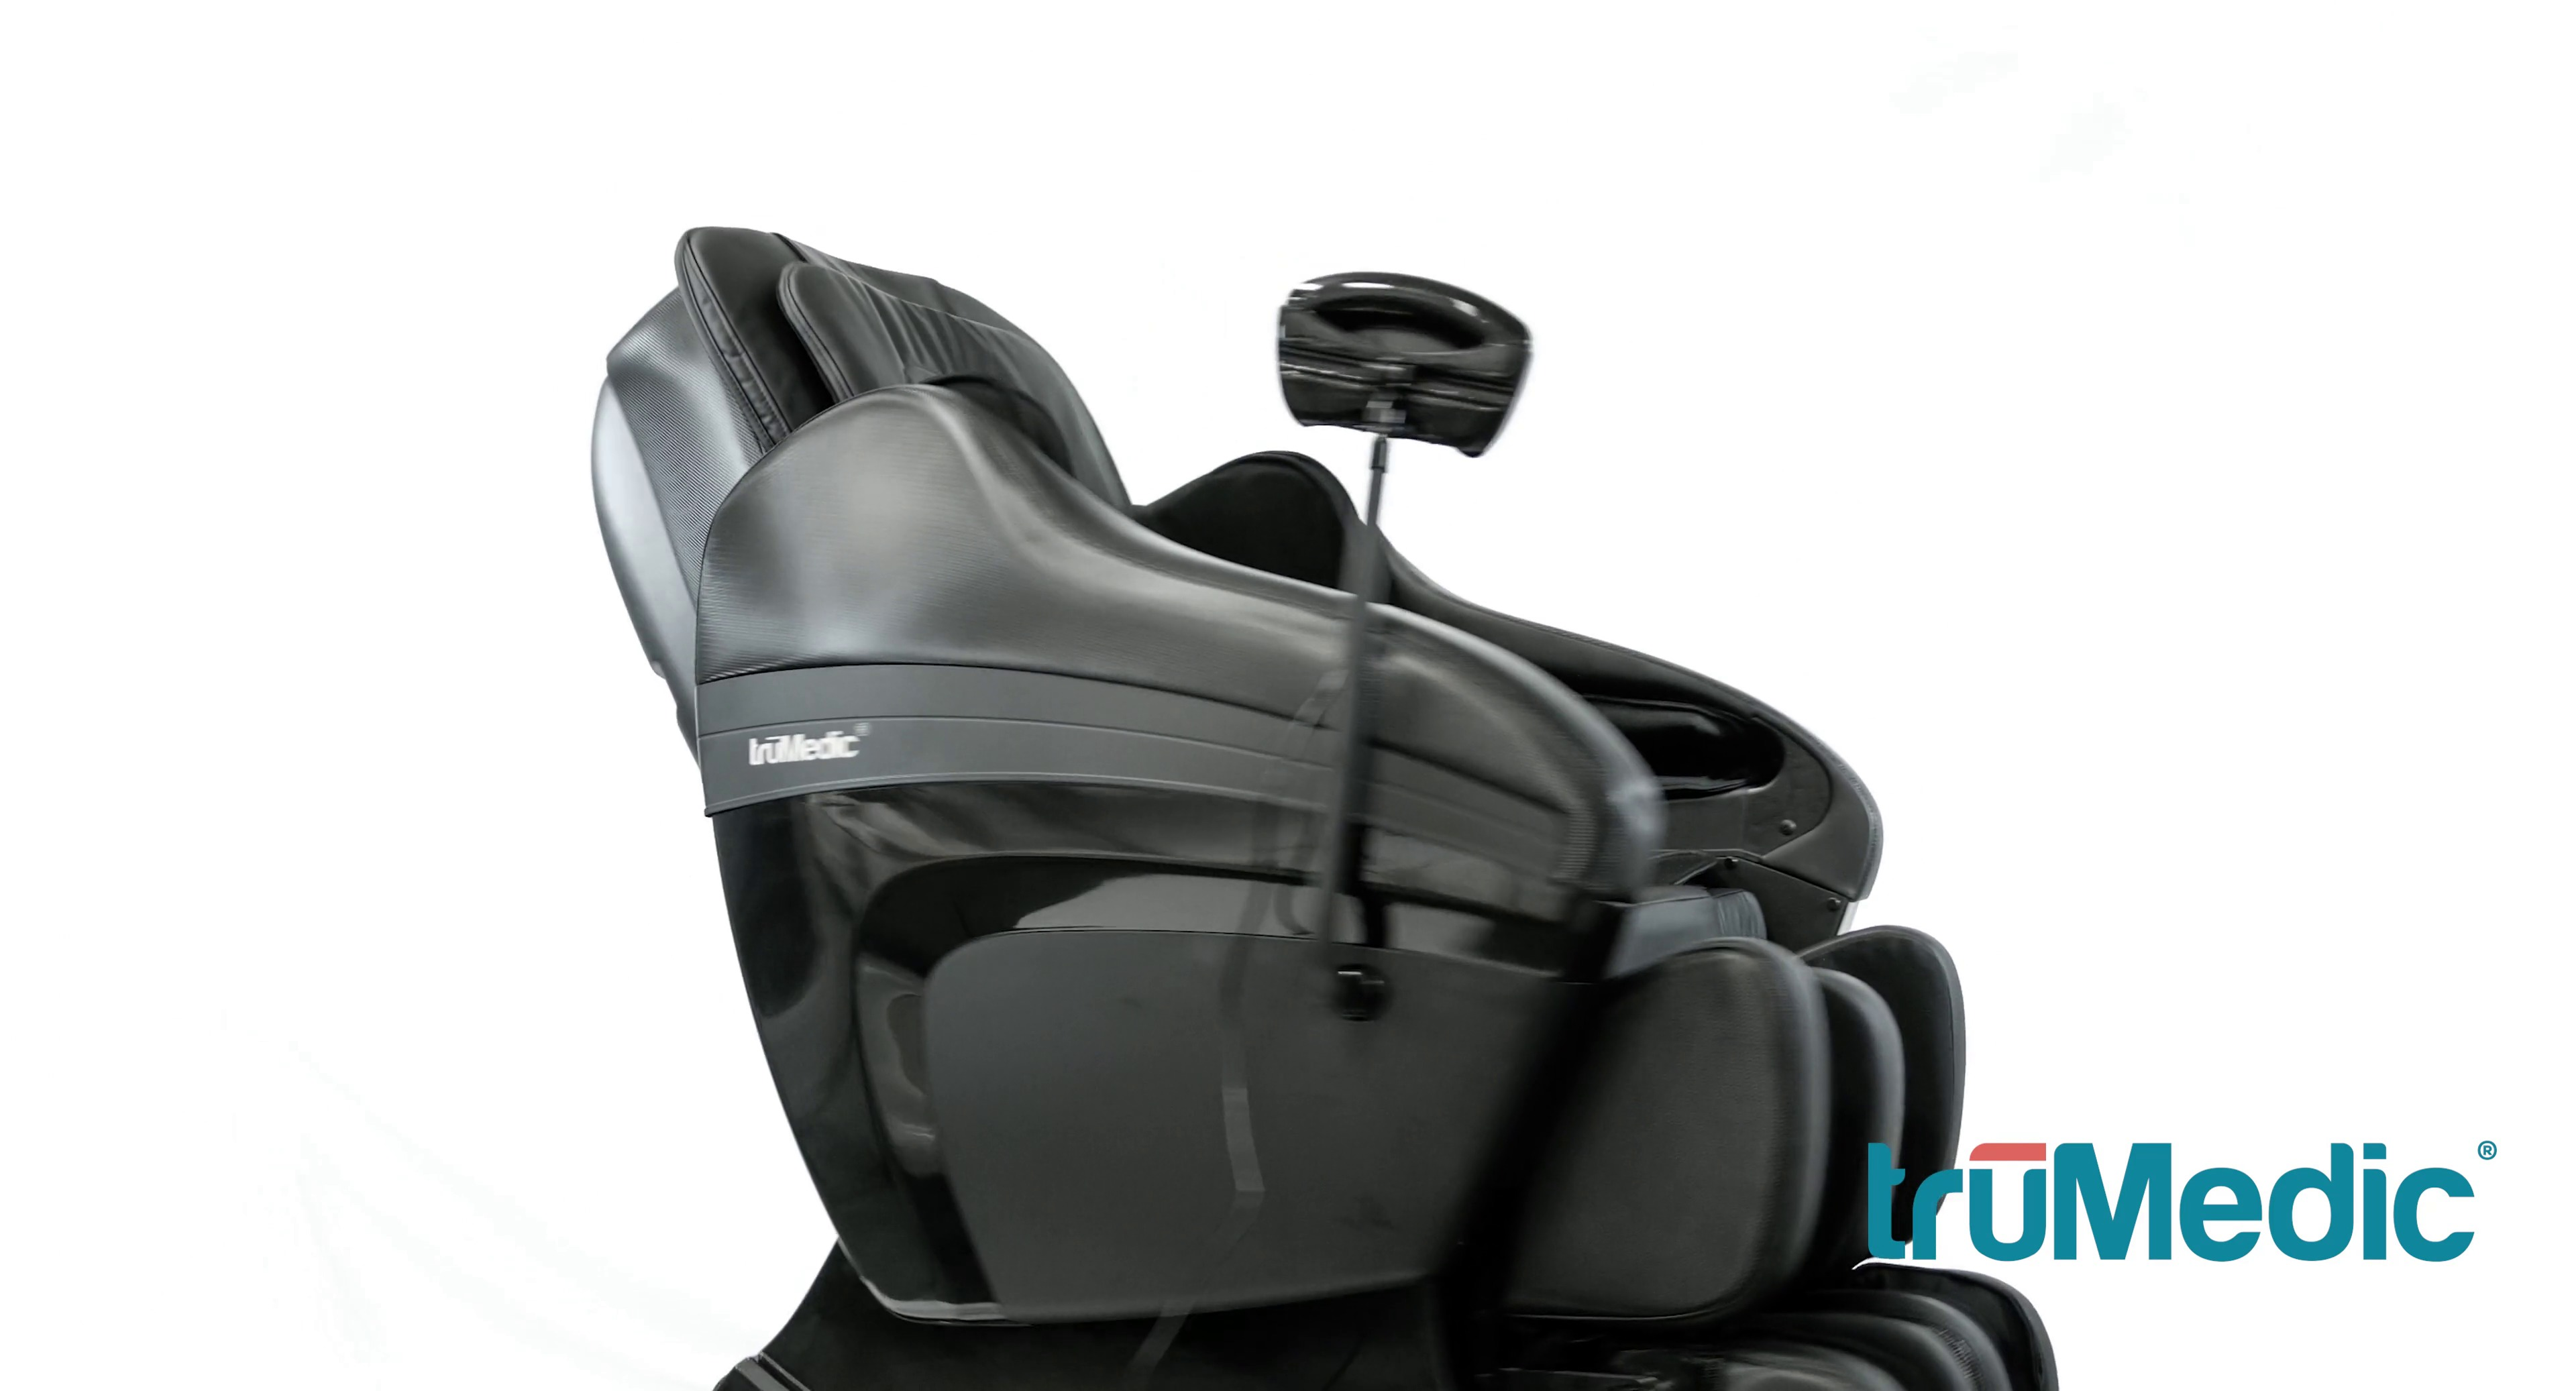 zerog massage save bone human hero products sale cost chair touch off